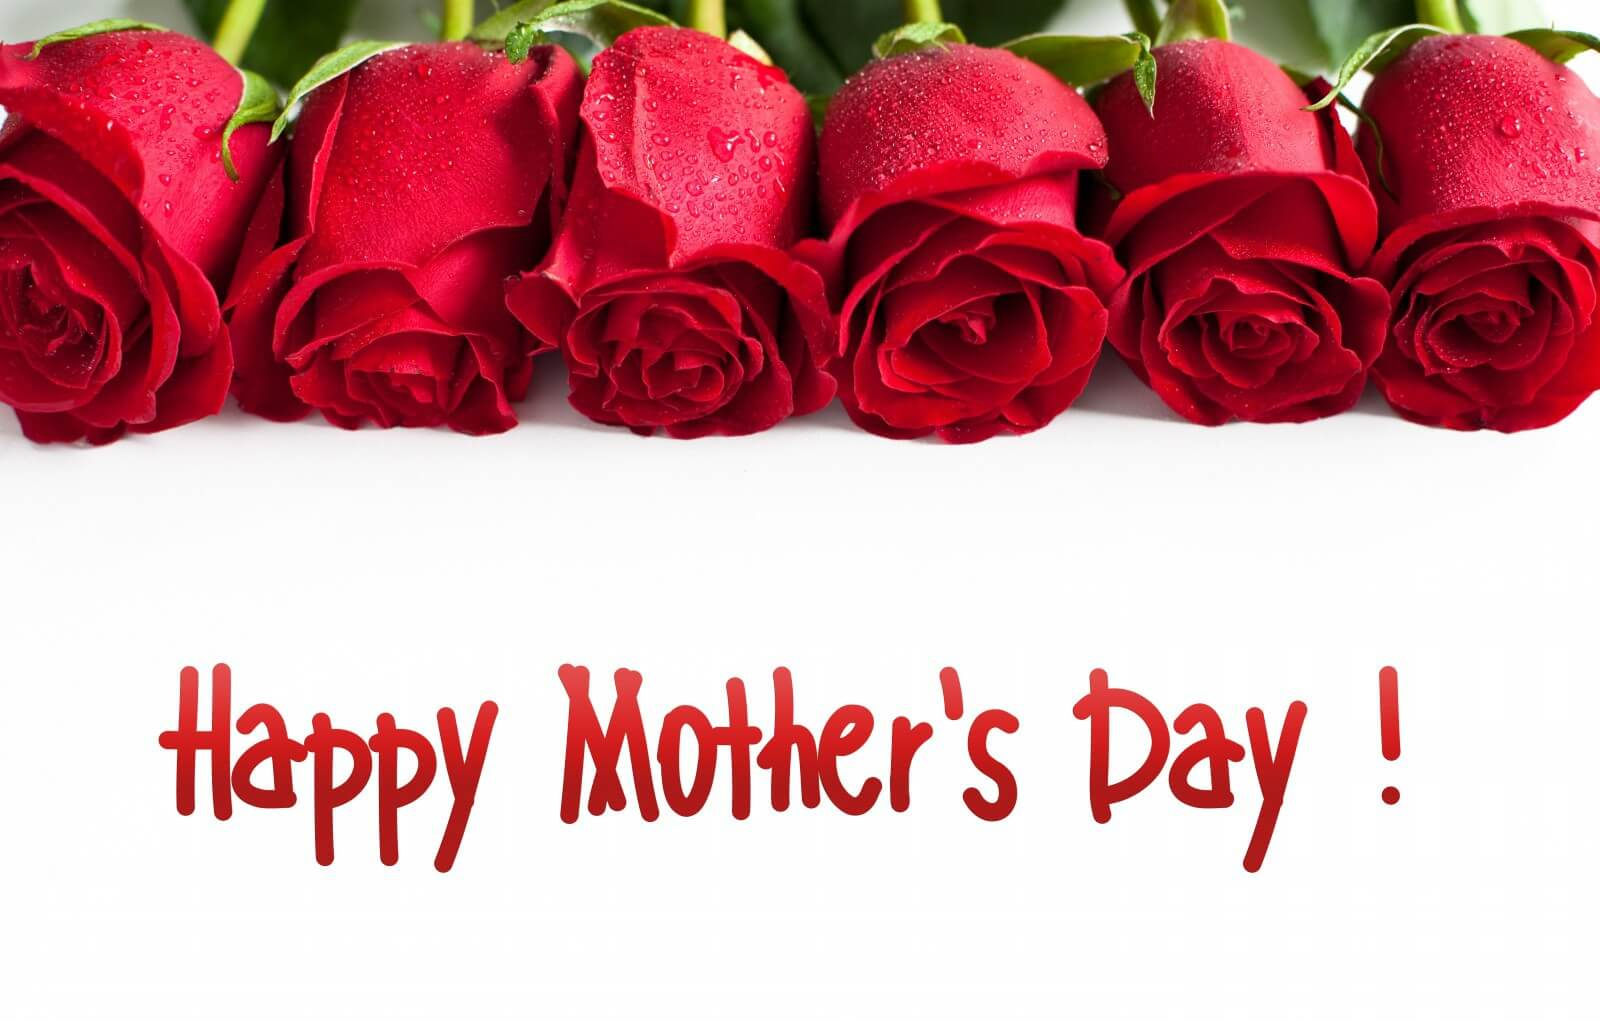 happy mothers day wallpaper hd desktop